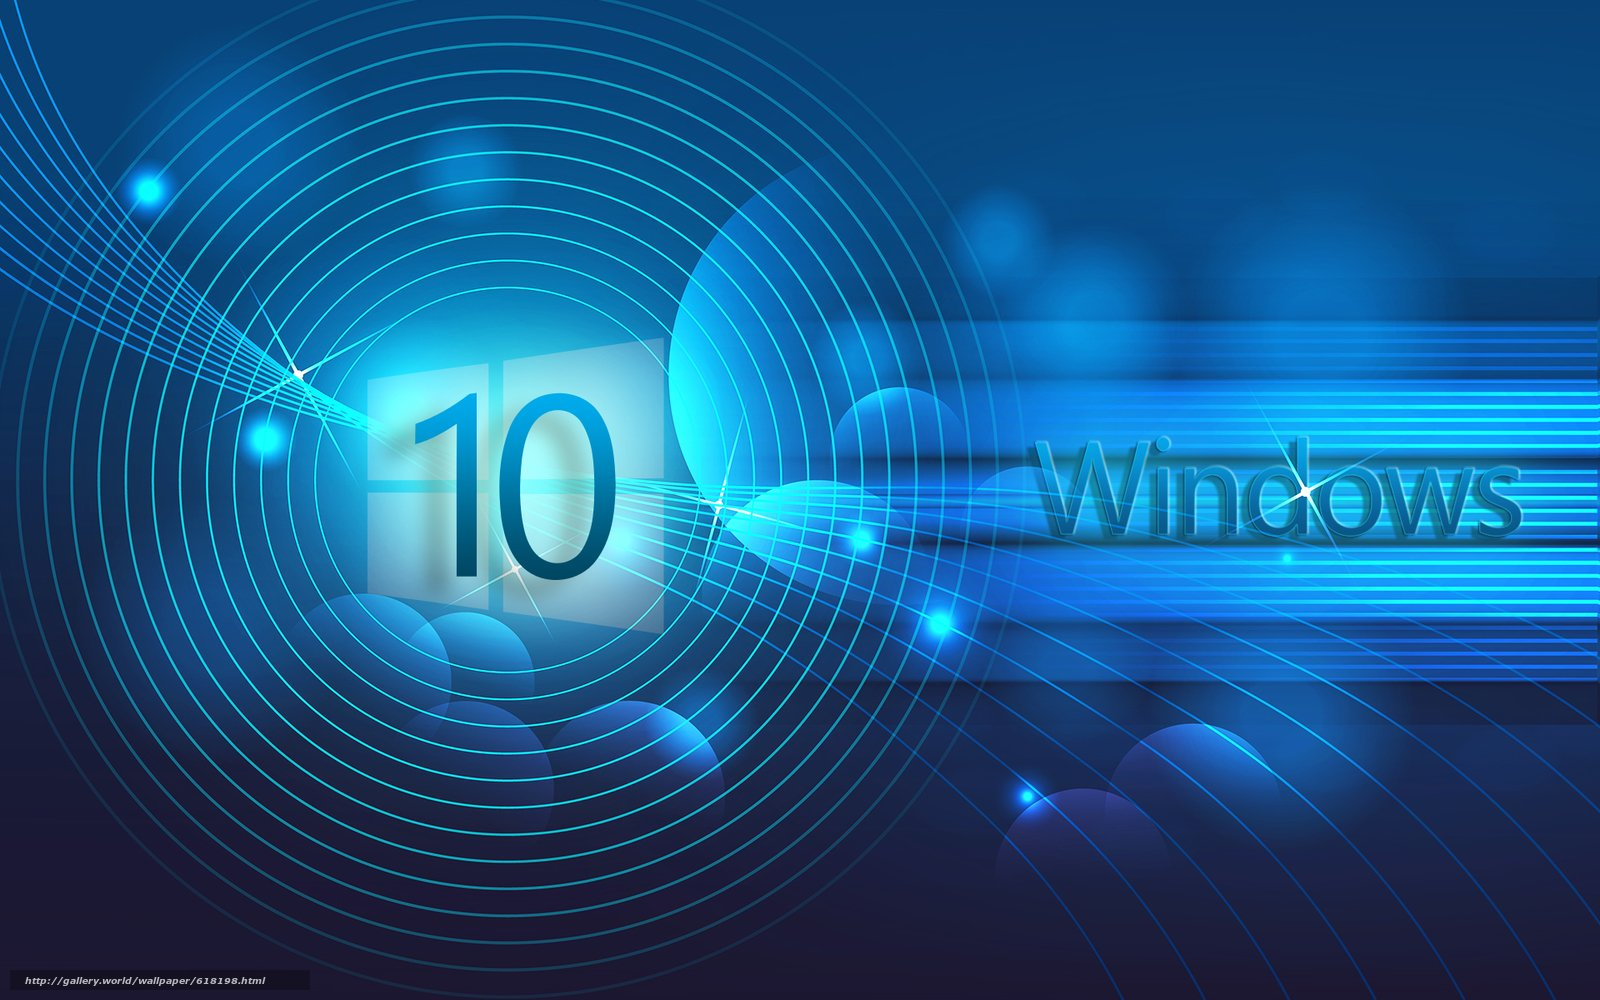 Windows 10 Wallpaper 1920X1200  WallpaperSafari